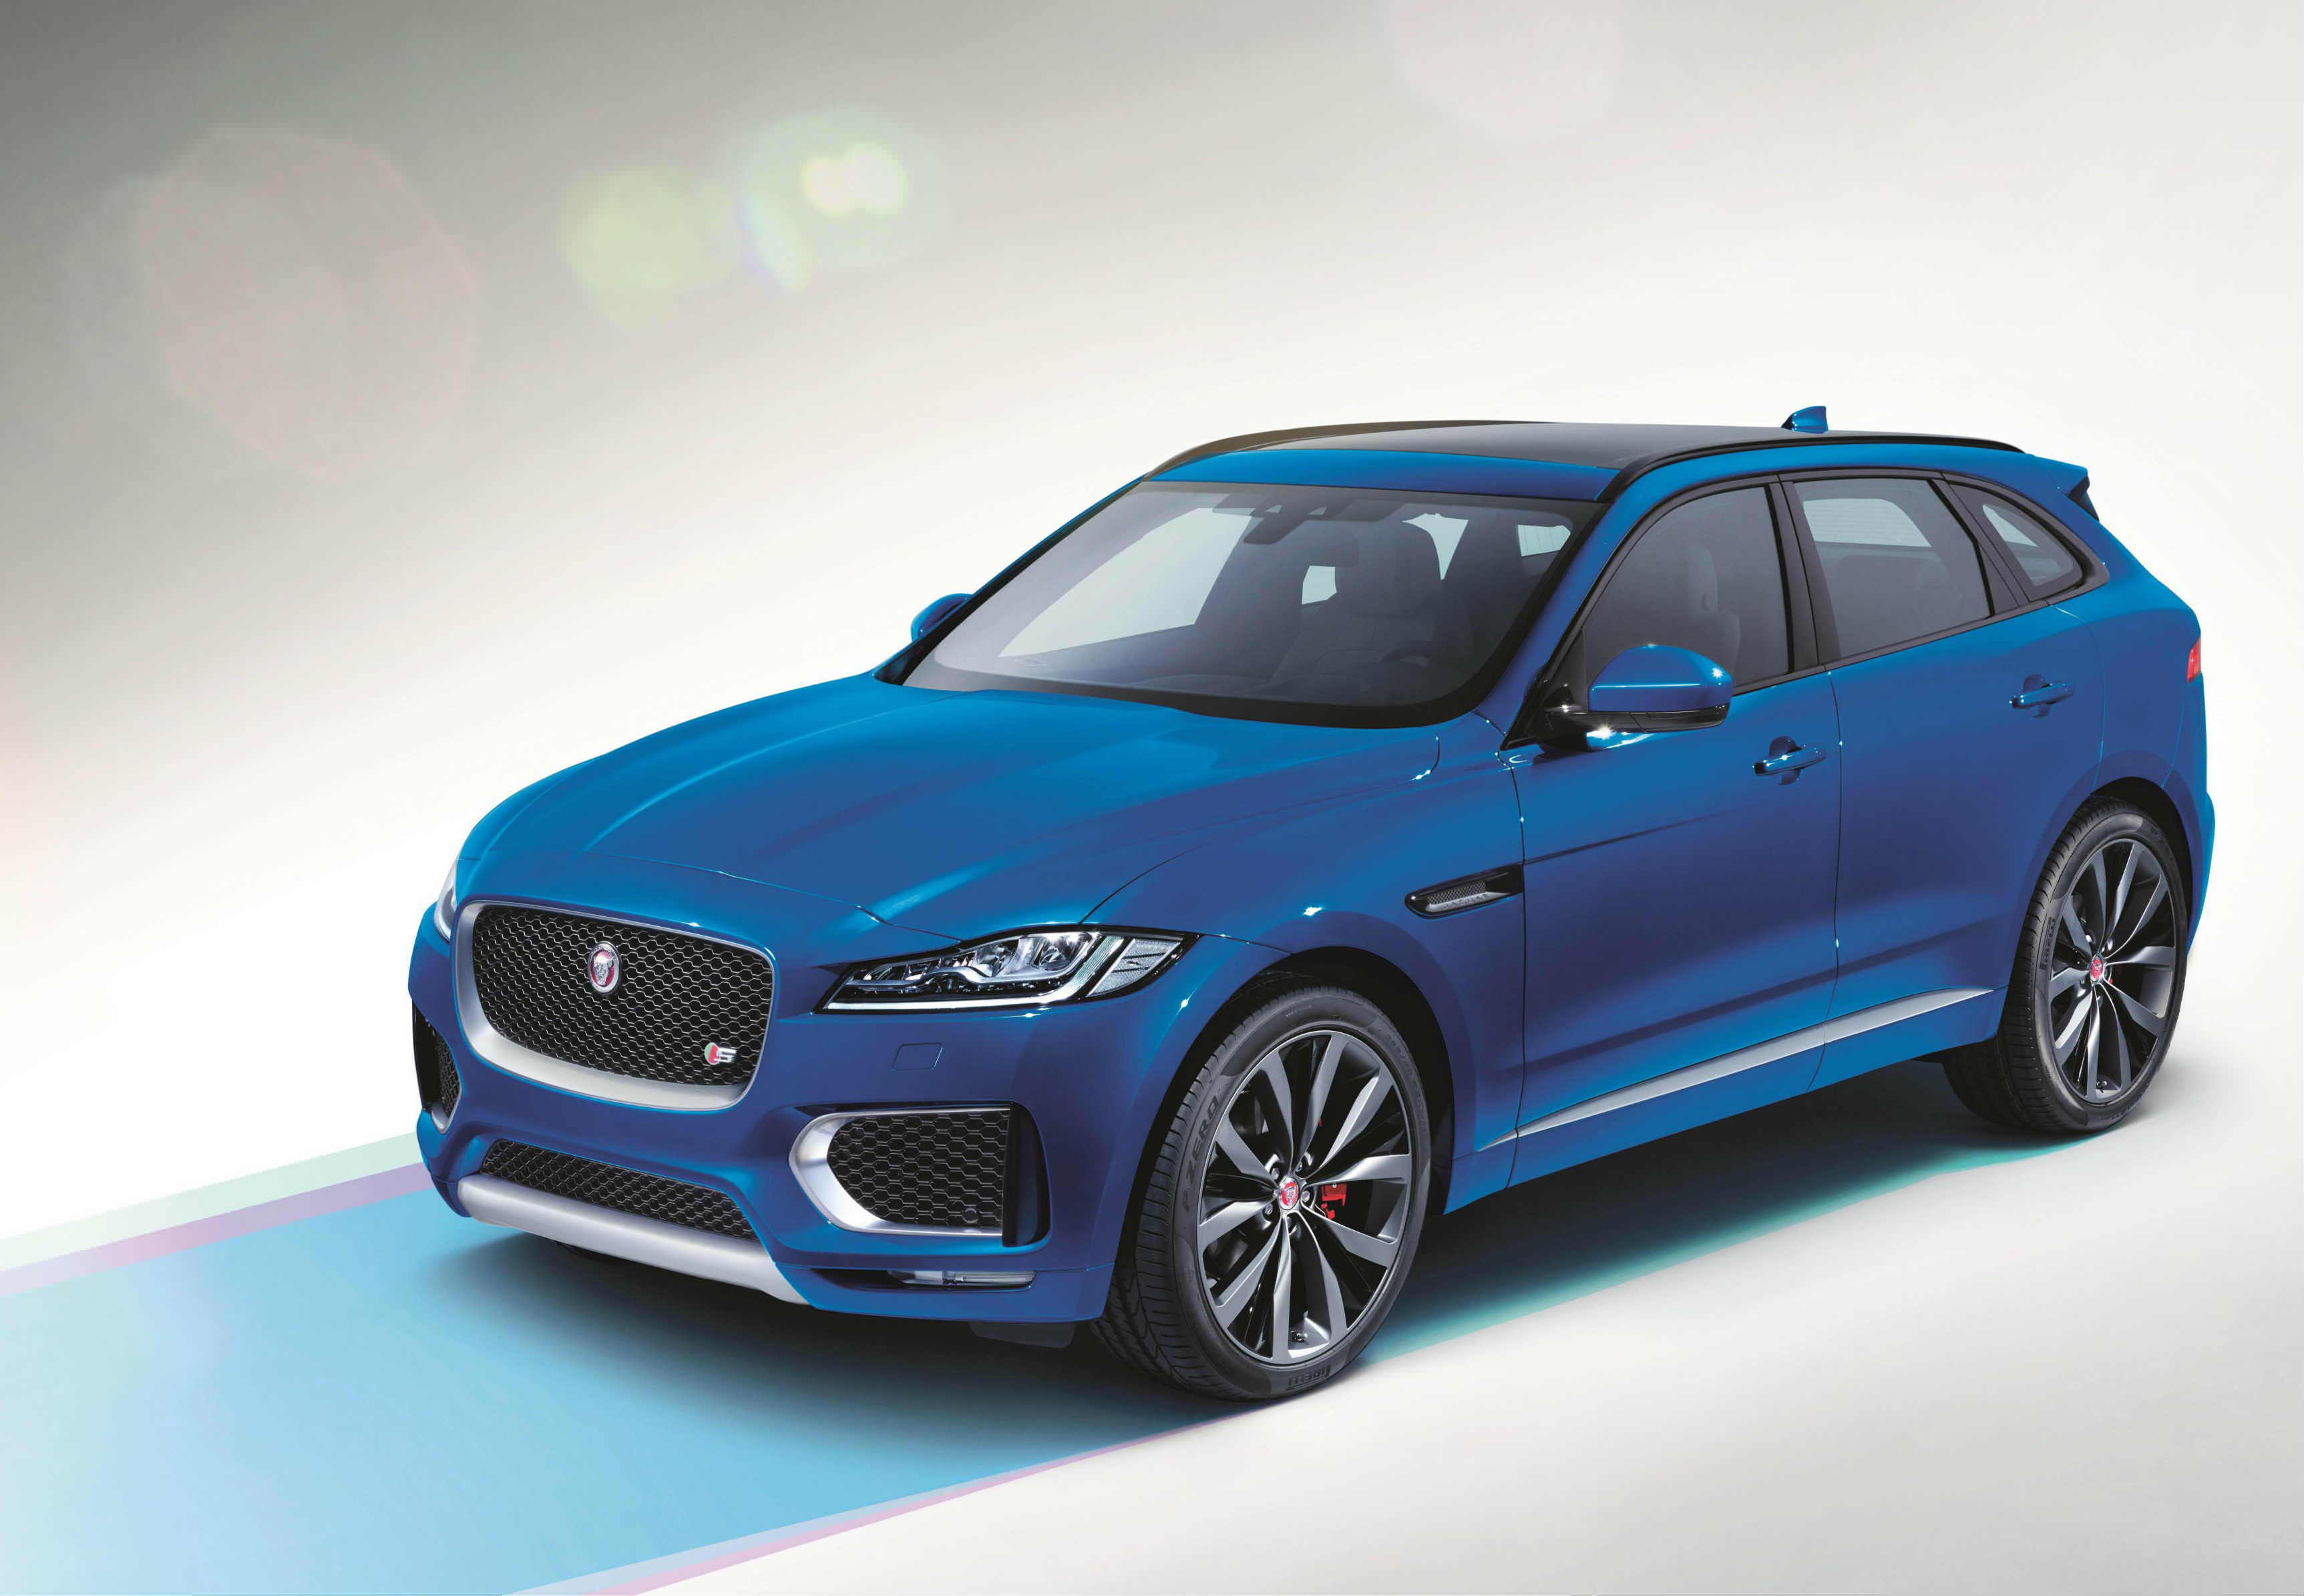 image of a blue jaguar f pace car exterior